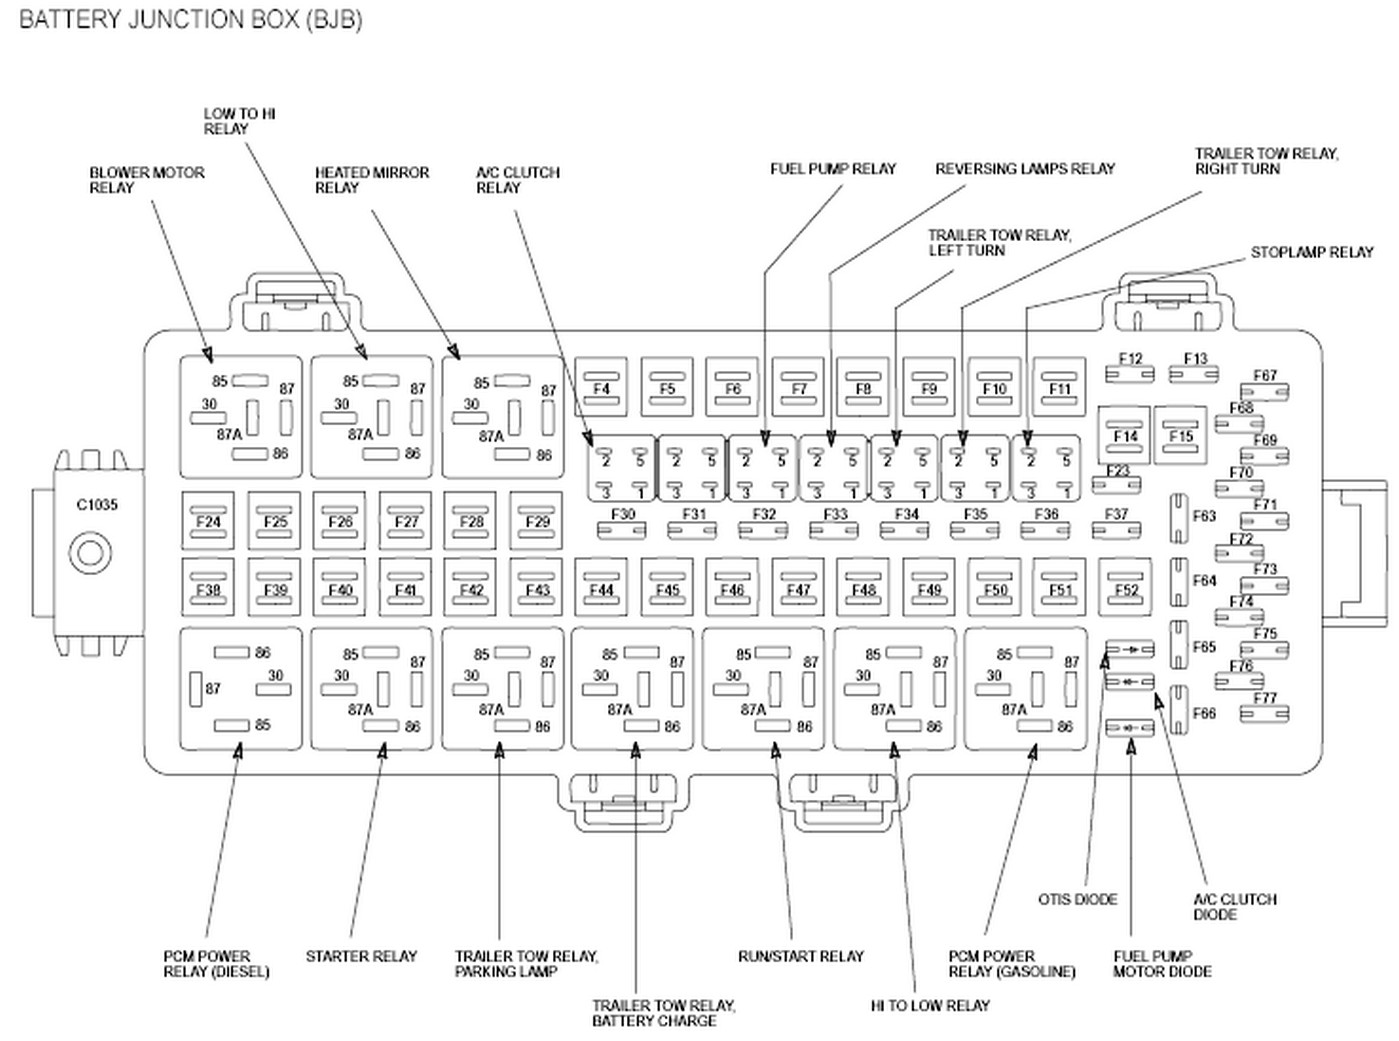 2011 ford f250 fuse box diagram Zoinyhu 2012 f250 fuse box location 2009 ford fusion fuse box diagram 2006 ford e350 fuse box diagram at edmiracle.co